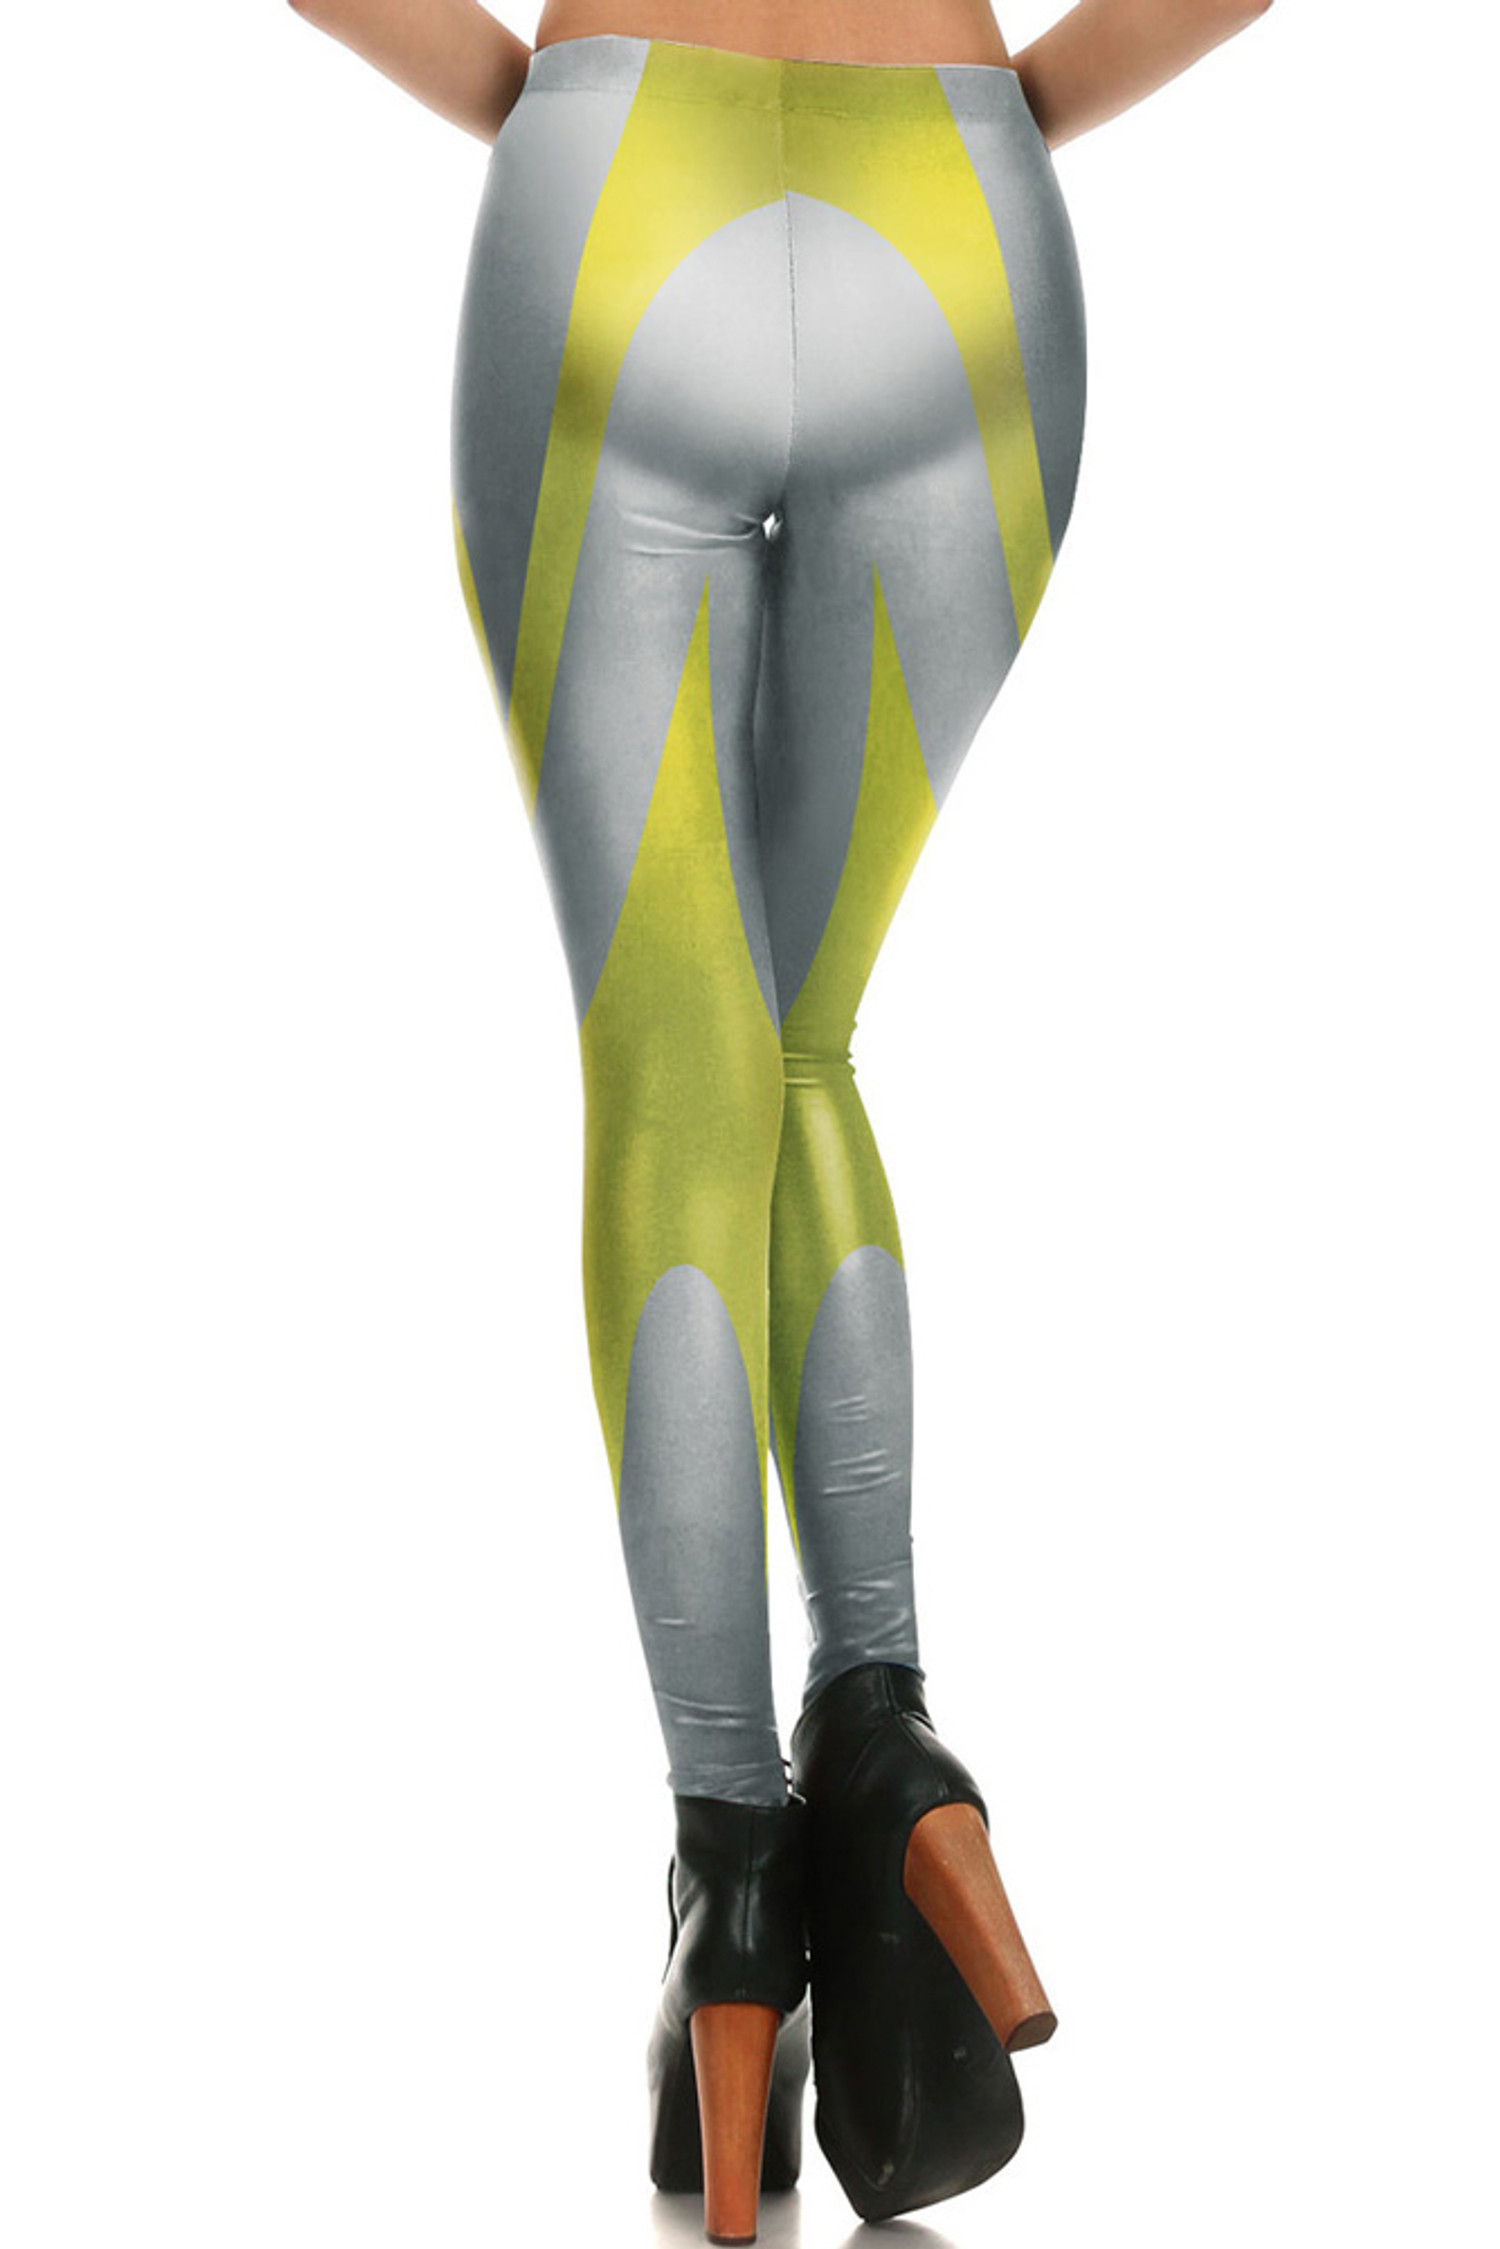 Silver and Gold Contour Leggings